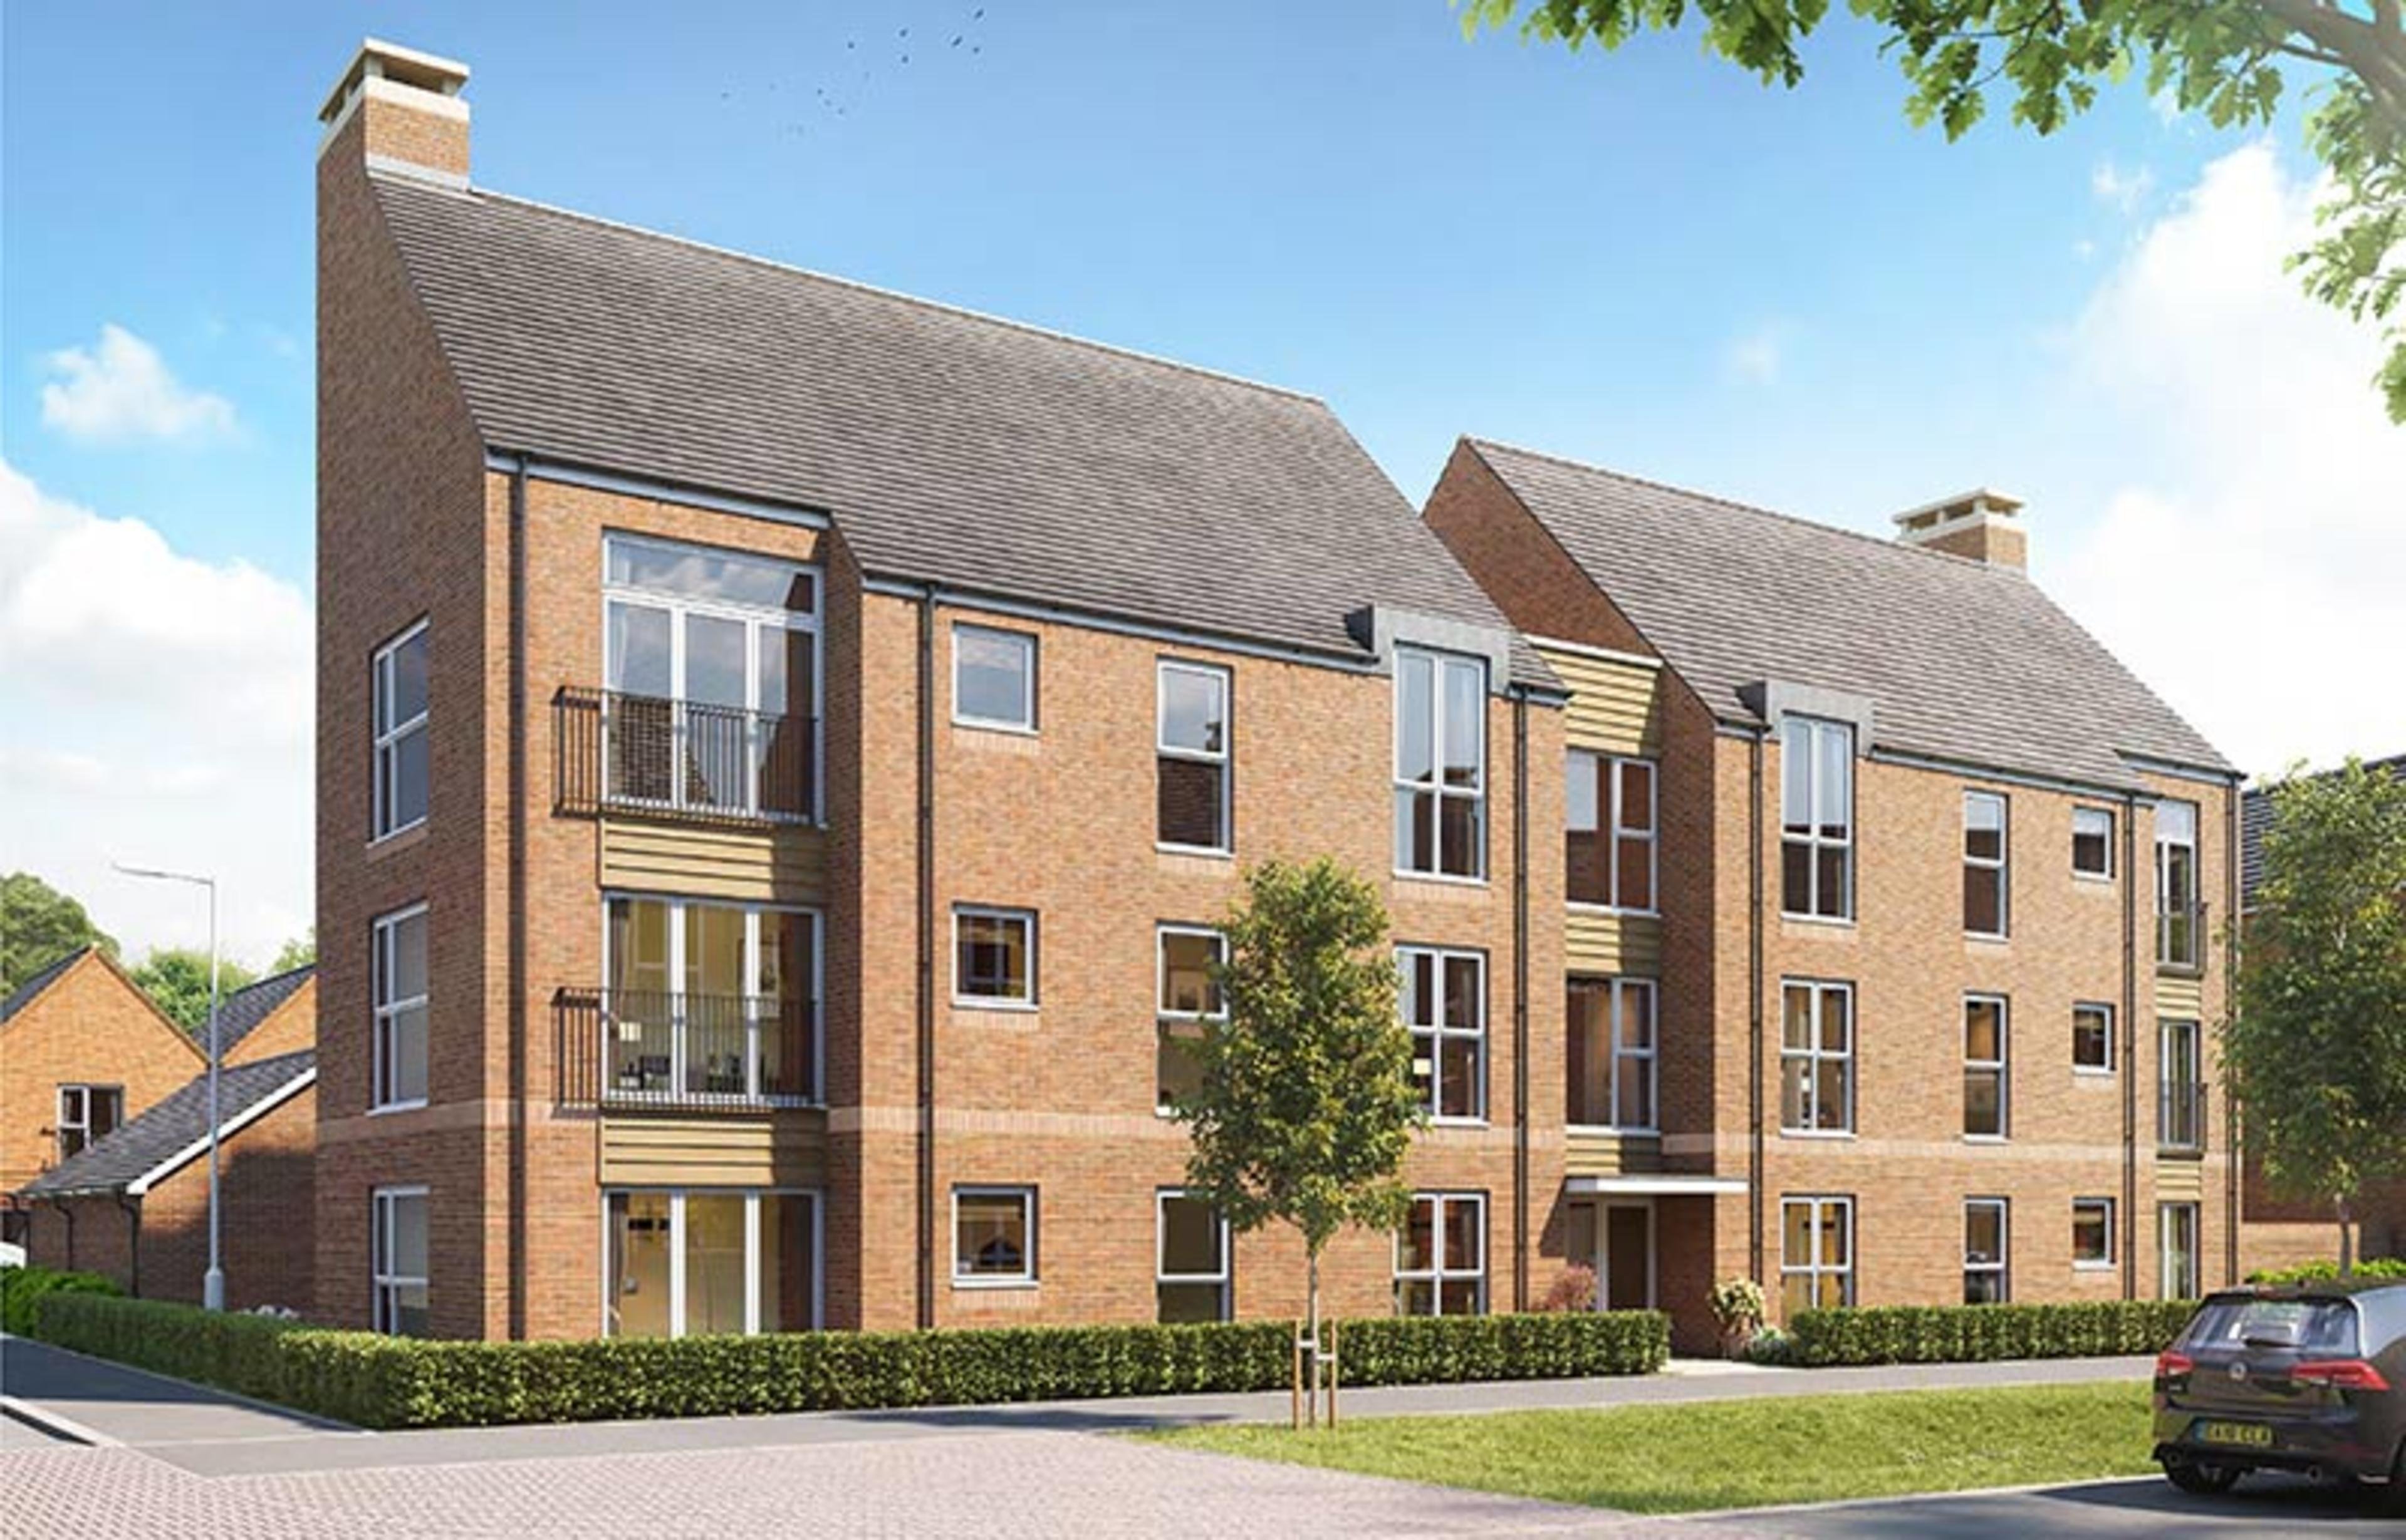 A CGI of new build apartment buildings at Kings Barton, Winchester